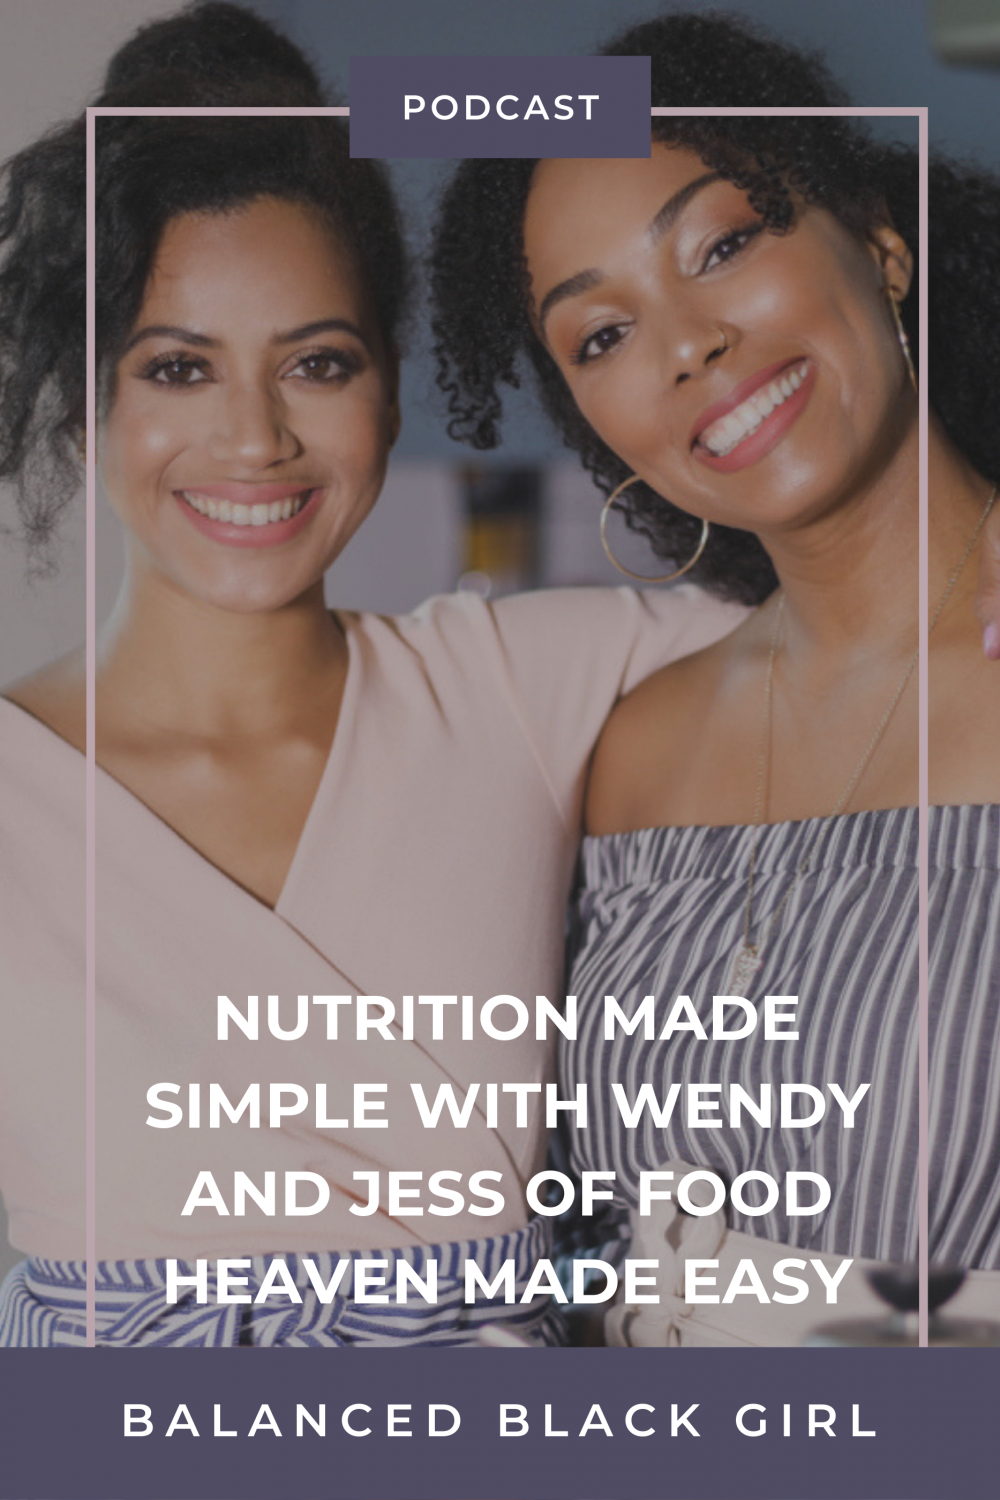 Episode 30: Nutrition Made Simple with Wendy and Jess of Food Heaven Made Easy